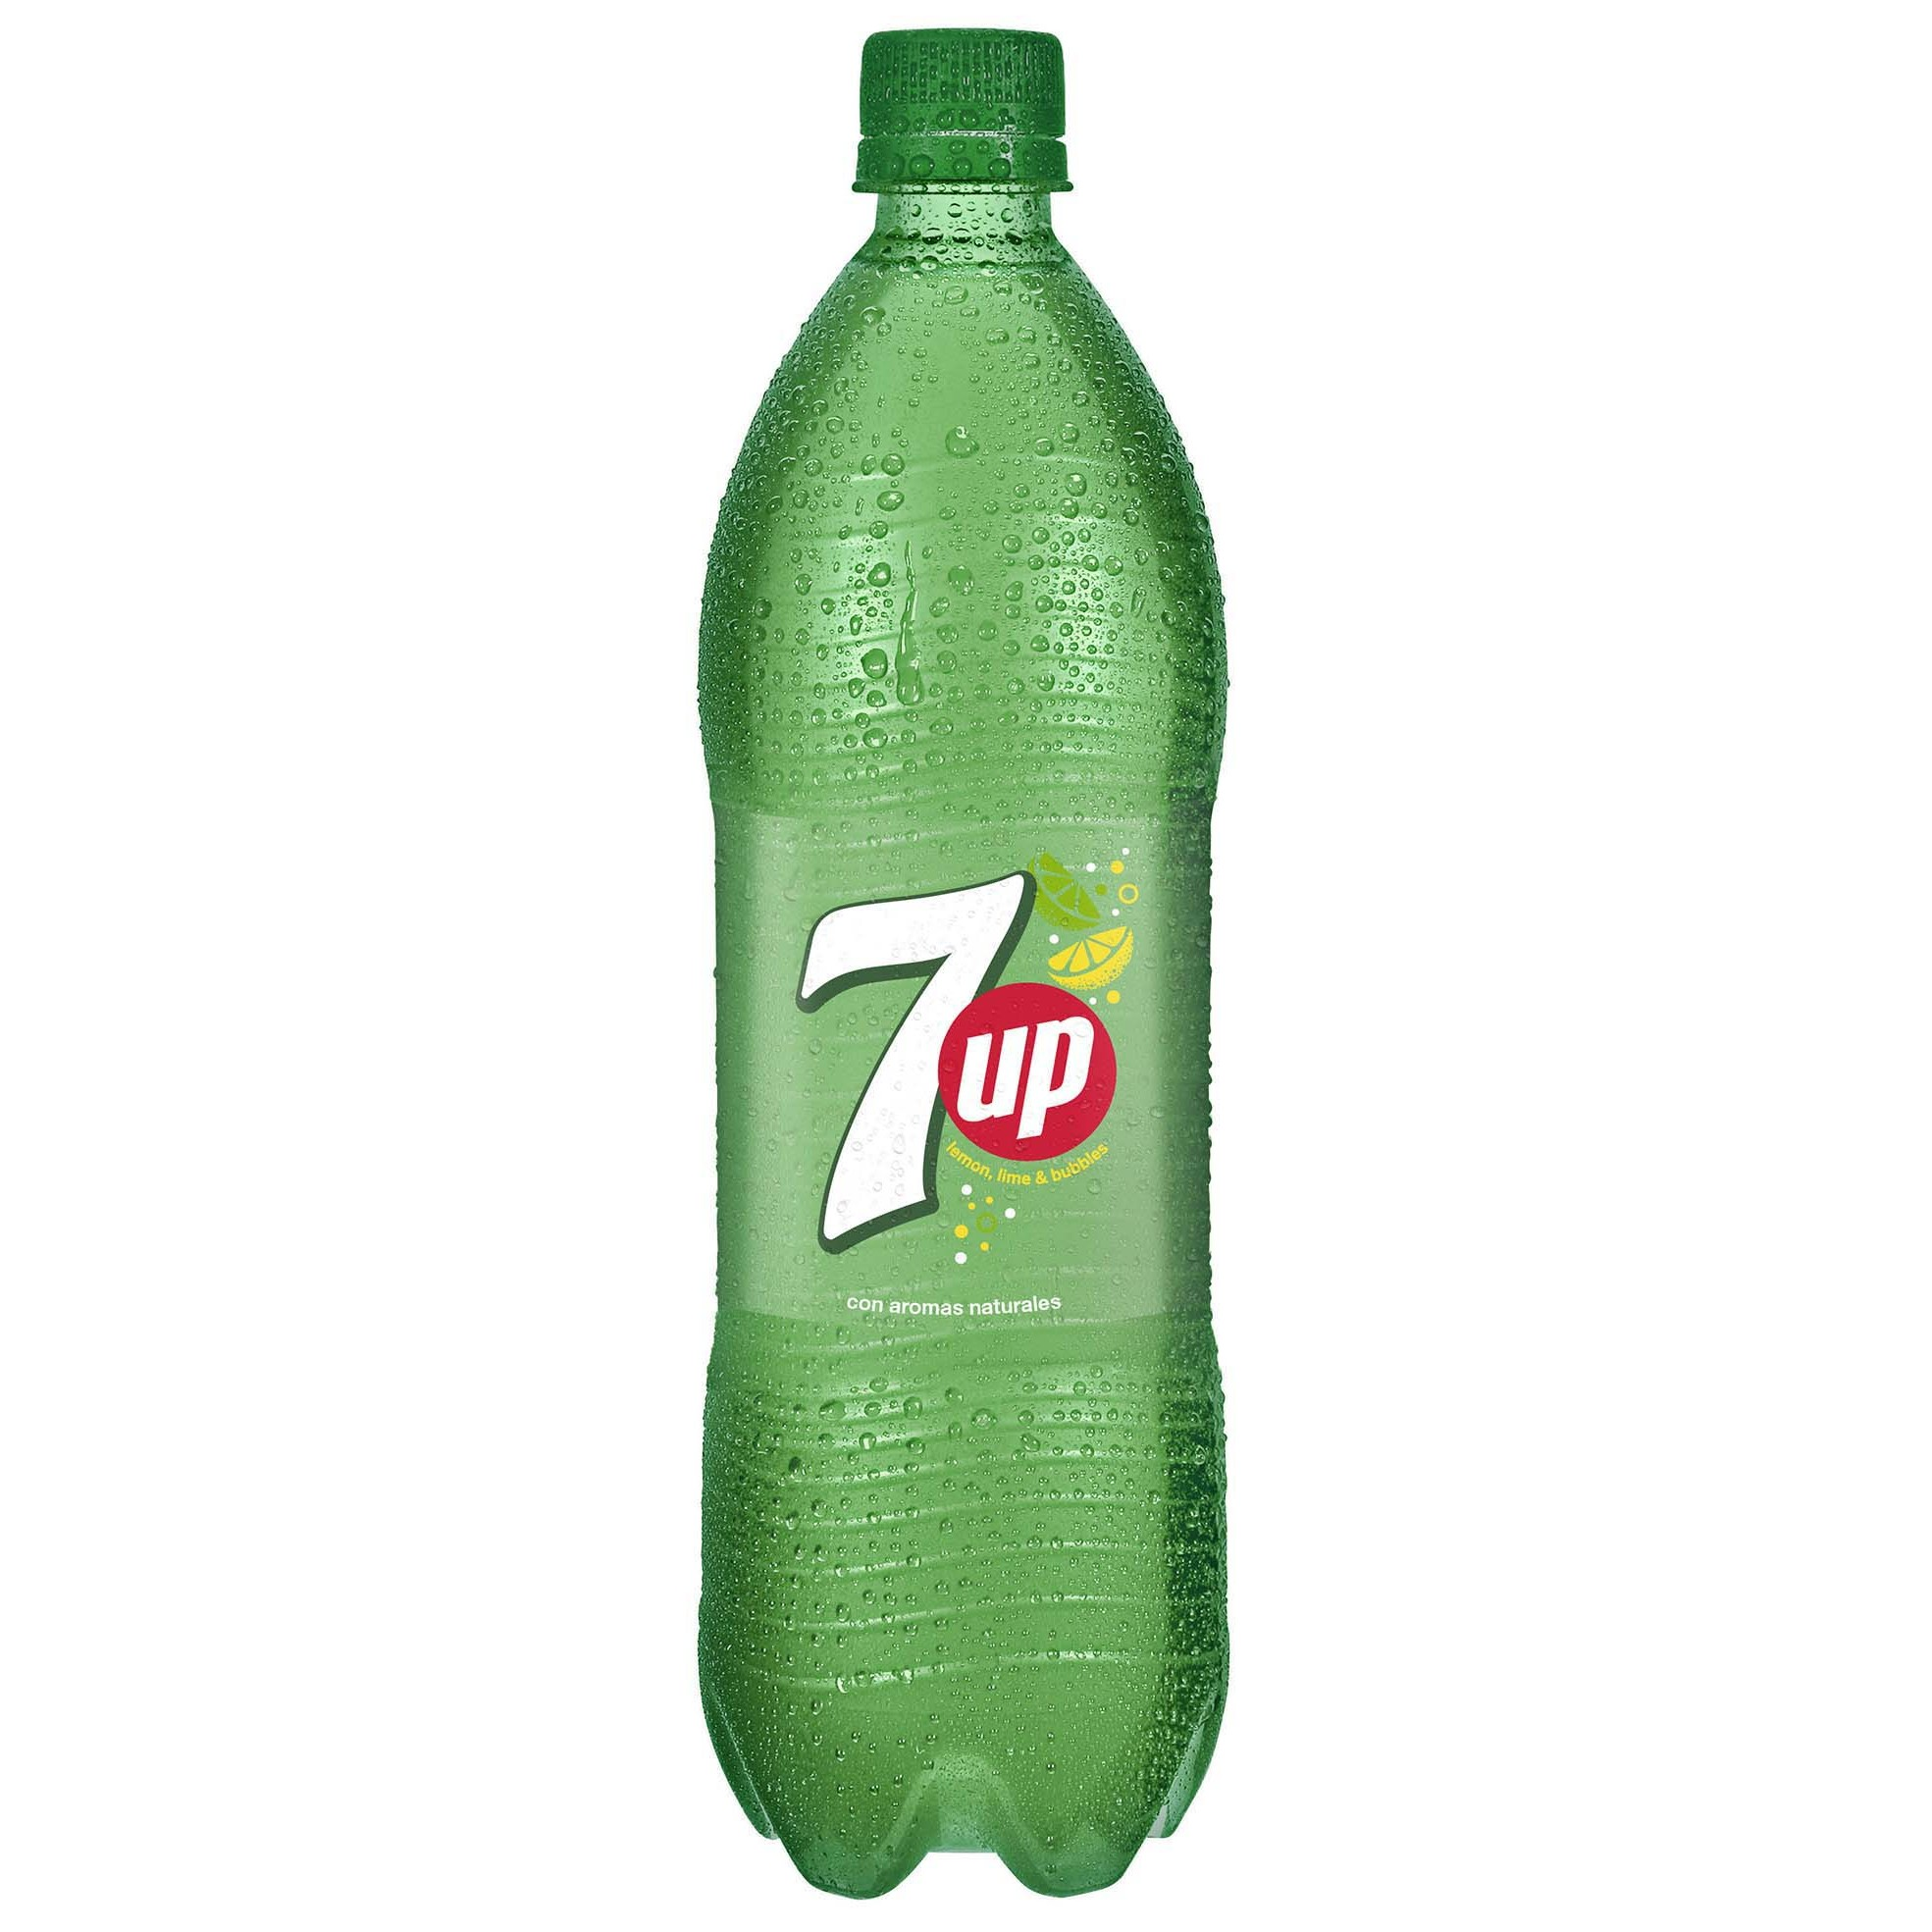 7up refresco lima limon lima de 1l. en botella